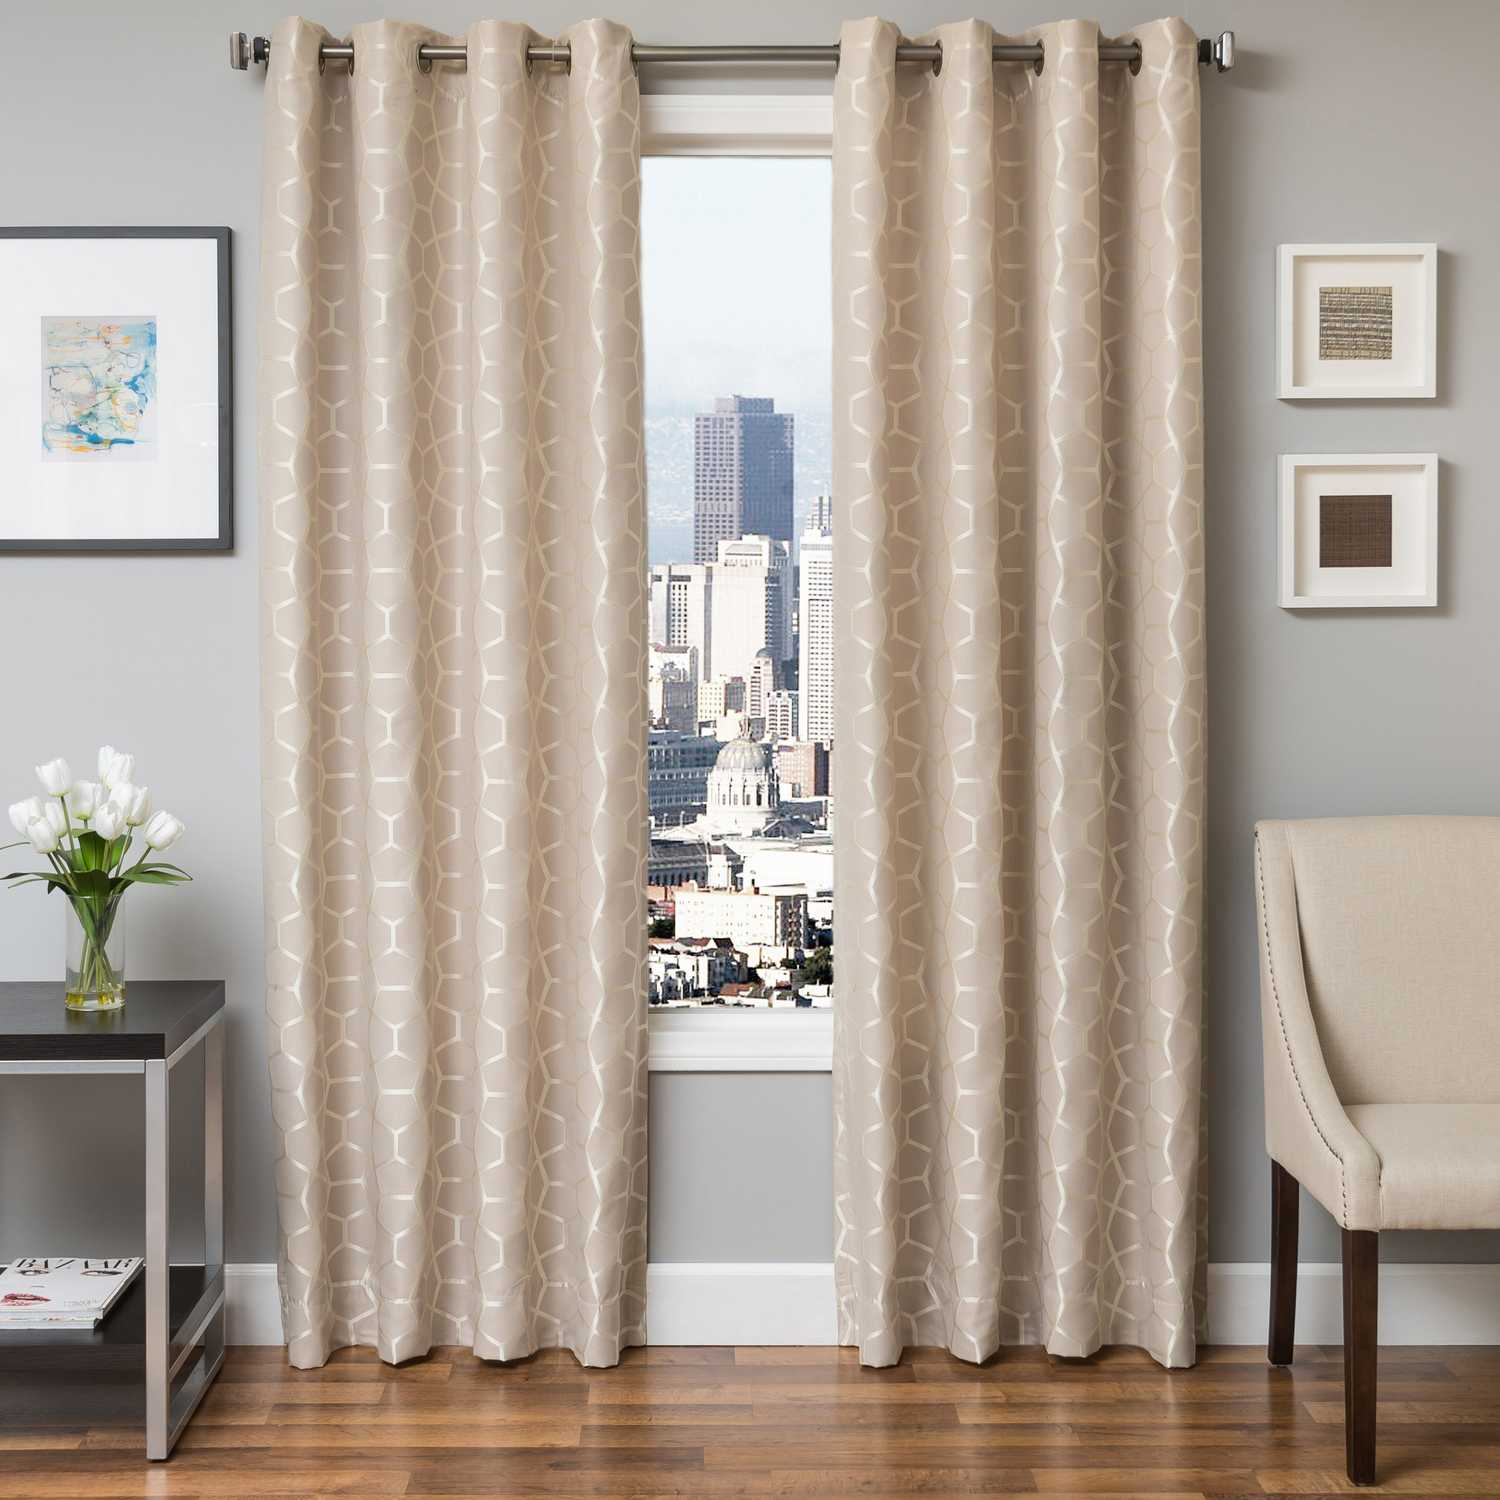 Home gt features amp occasions gt blackout curtains blackout luxury - Natural